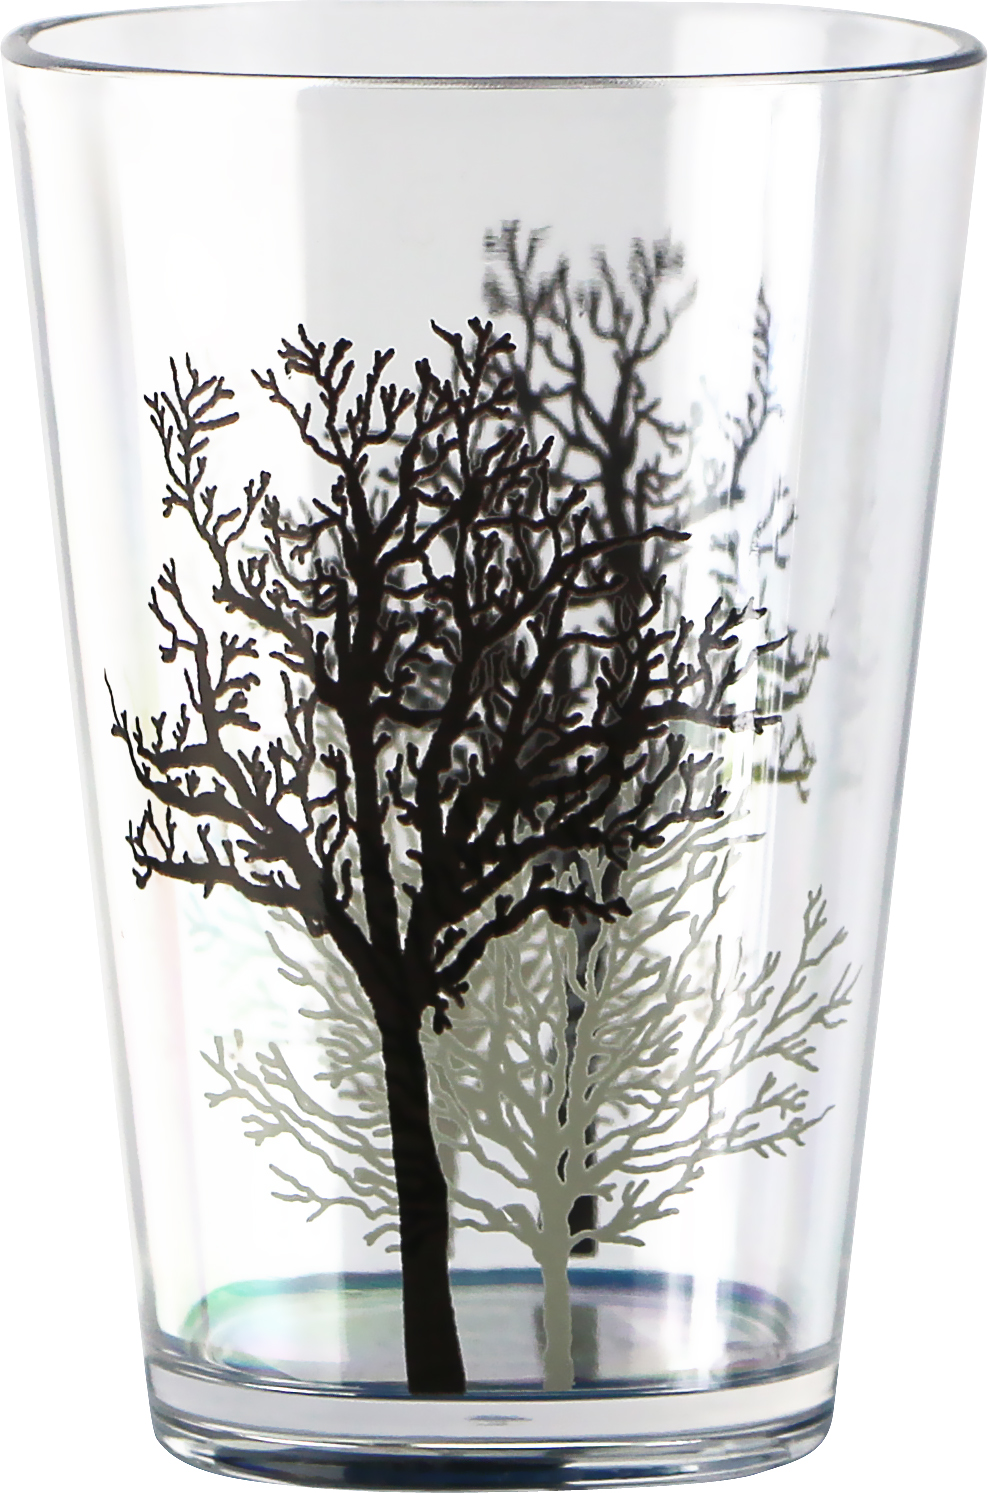 8-Ounce Corelle Coordinates by Reston Lloyd Timber Shadows Acrylic Juice Glasses Set of 6